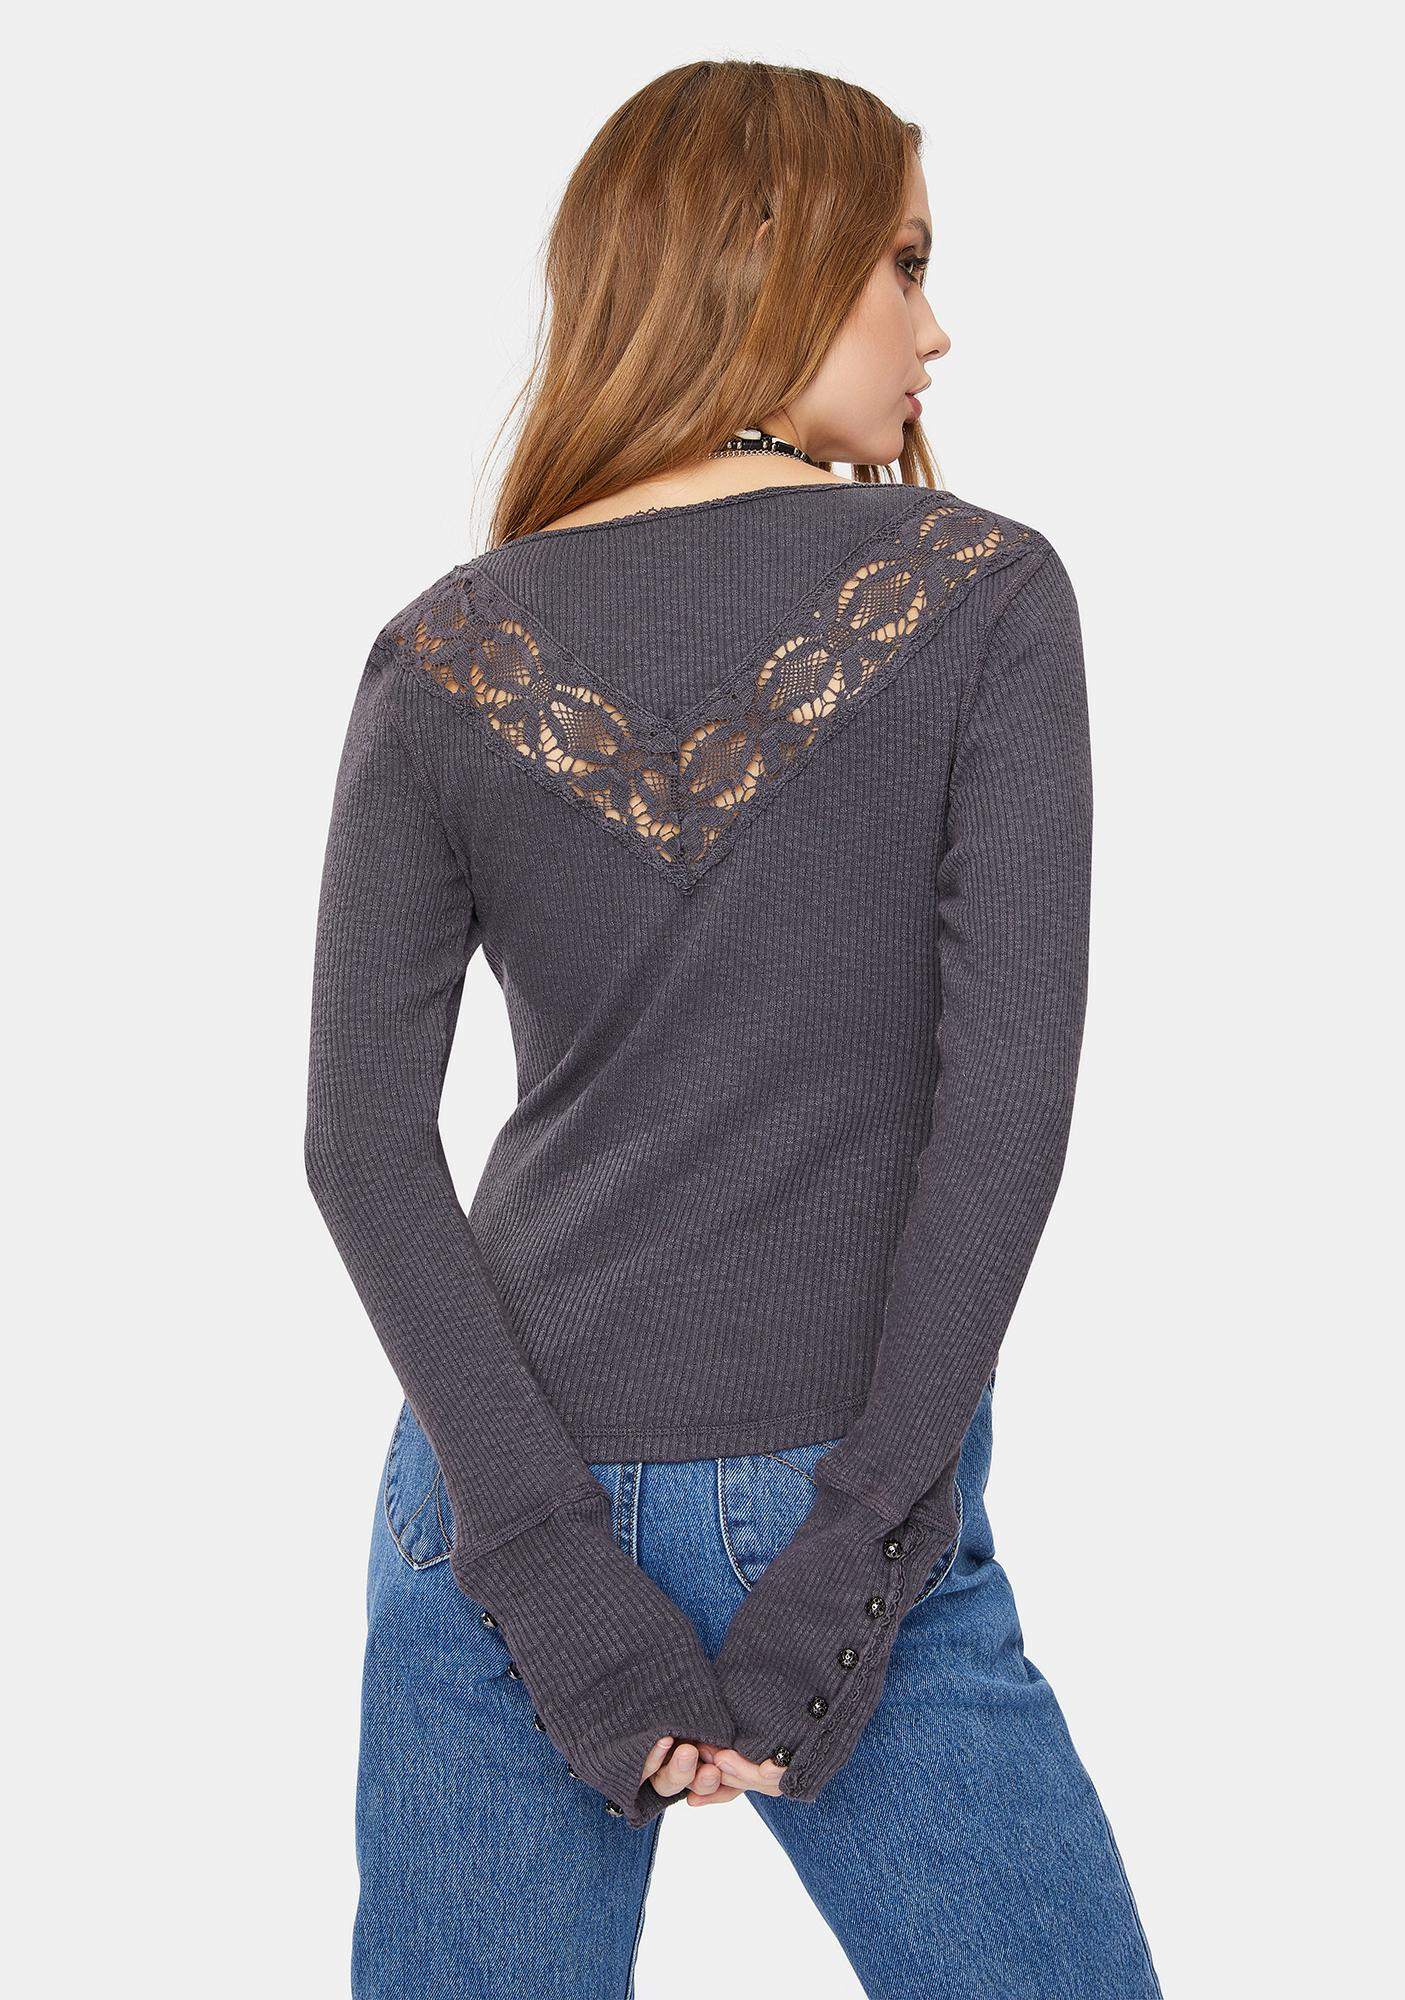 Free People Come On Over Henley Tee